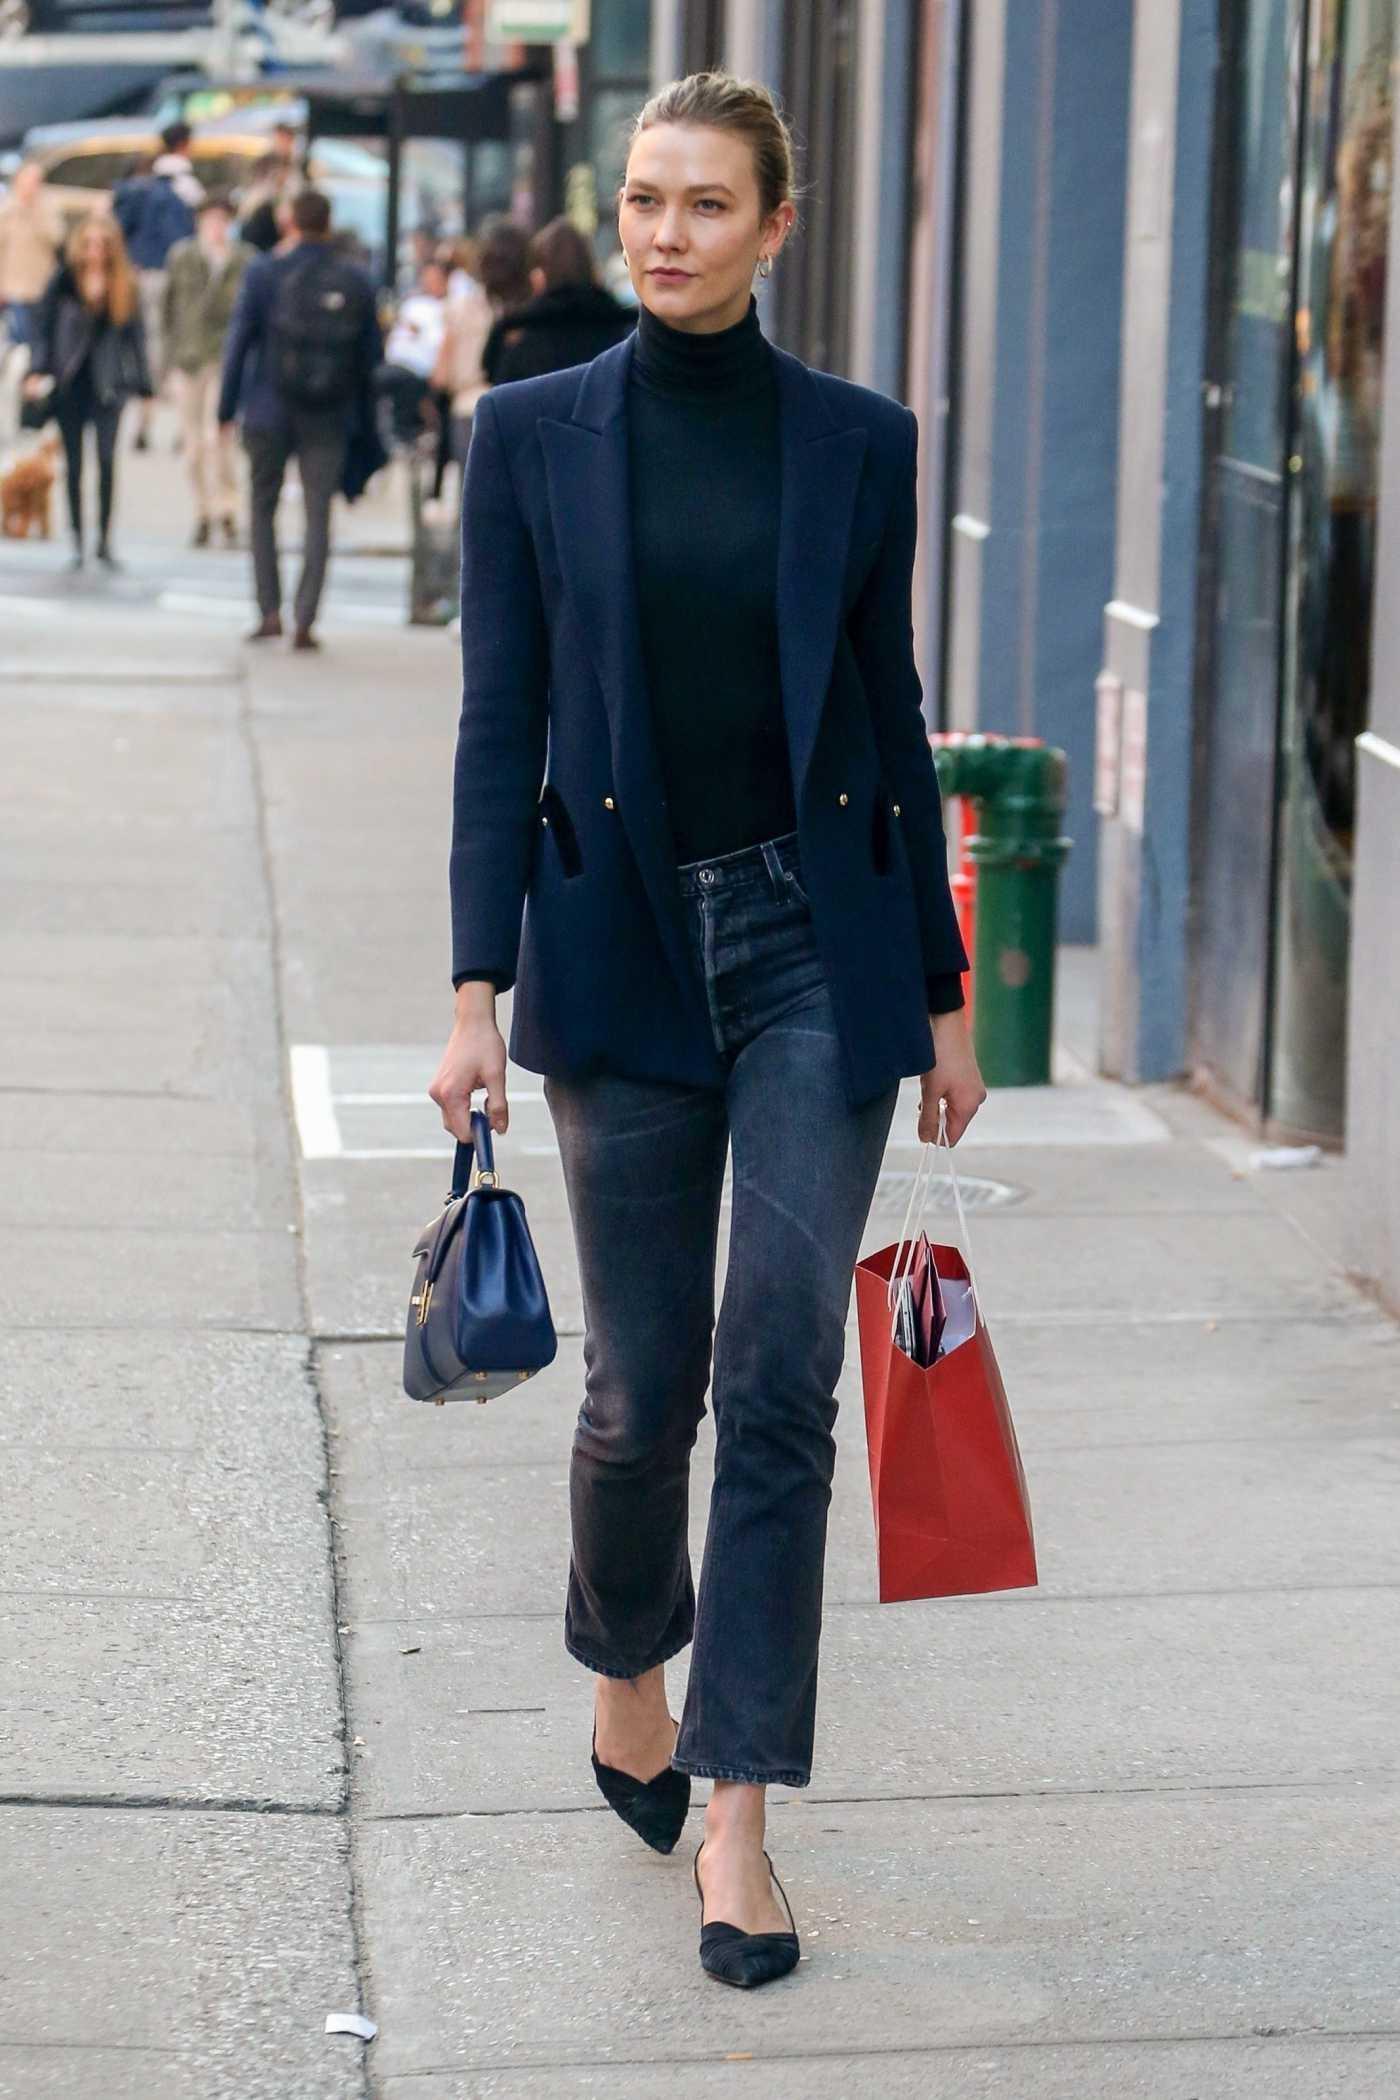 Karlie Kloss in a Blue Blazer Was Seen Out in New York City 03/09/2020